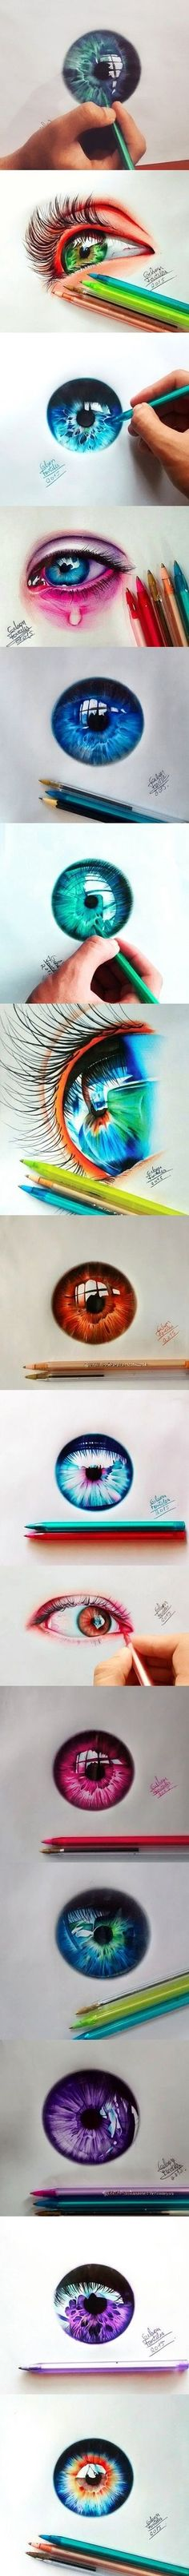 Extraordinaire dessin  another level of amazing